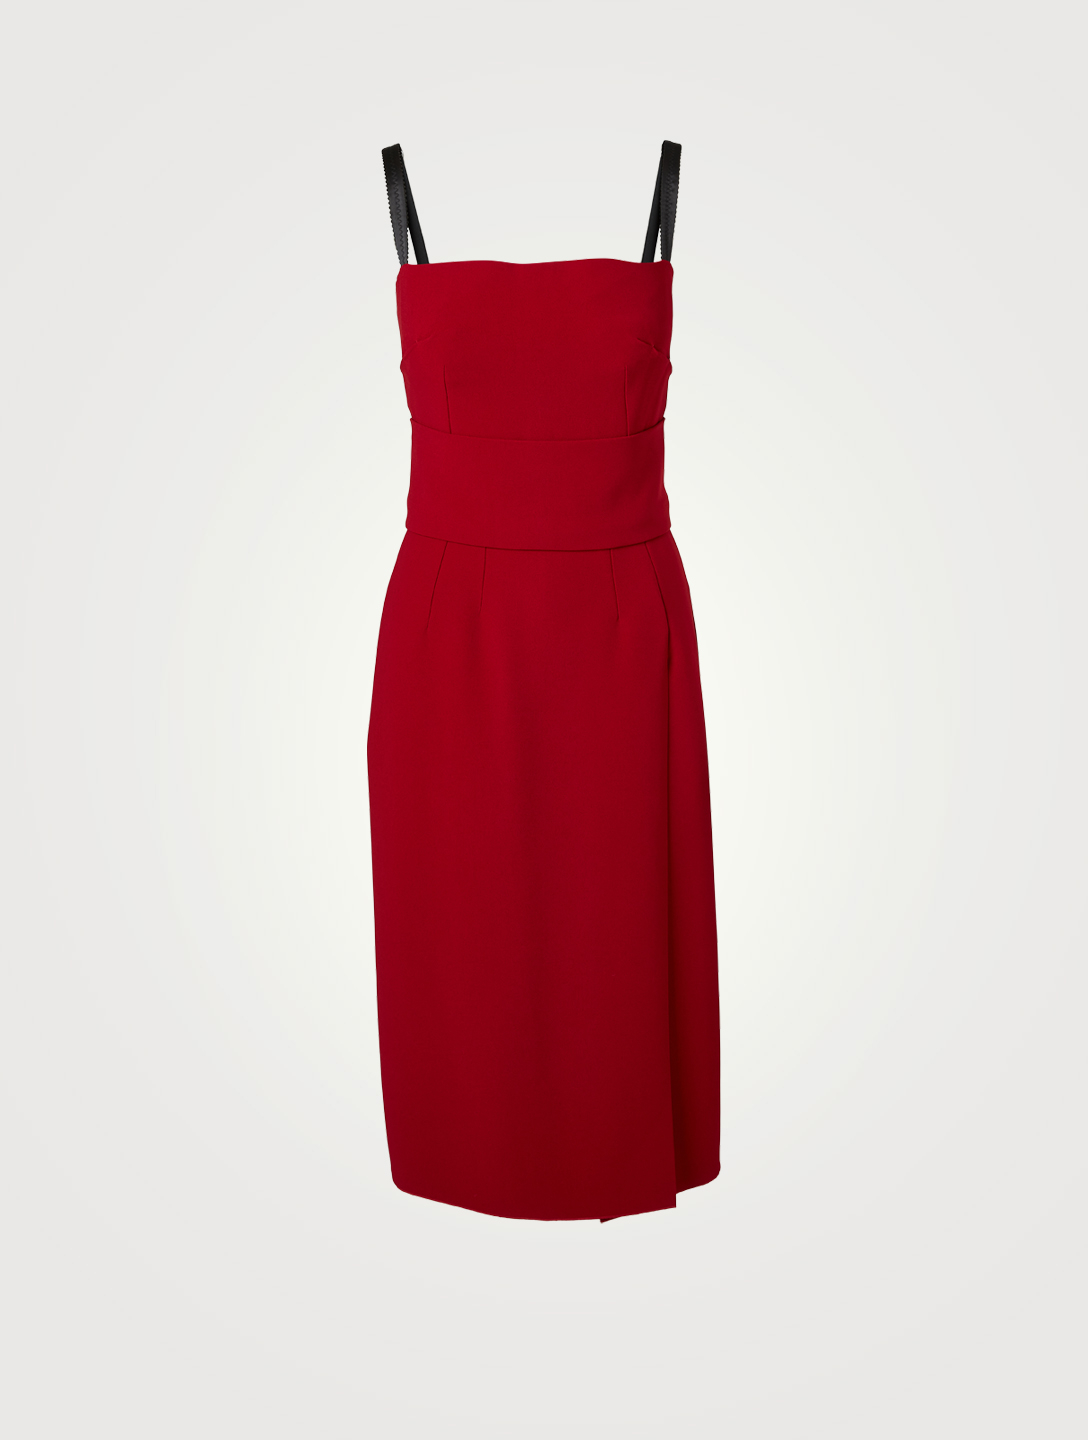 DOLCE & GABBANA Cady Midi Dress With Side Slit Women's Red